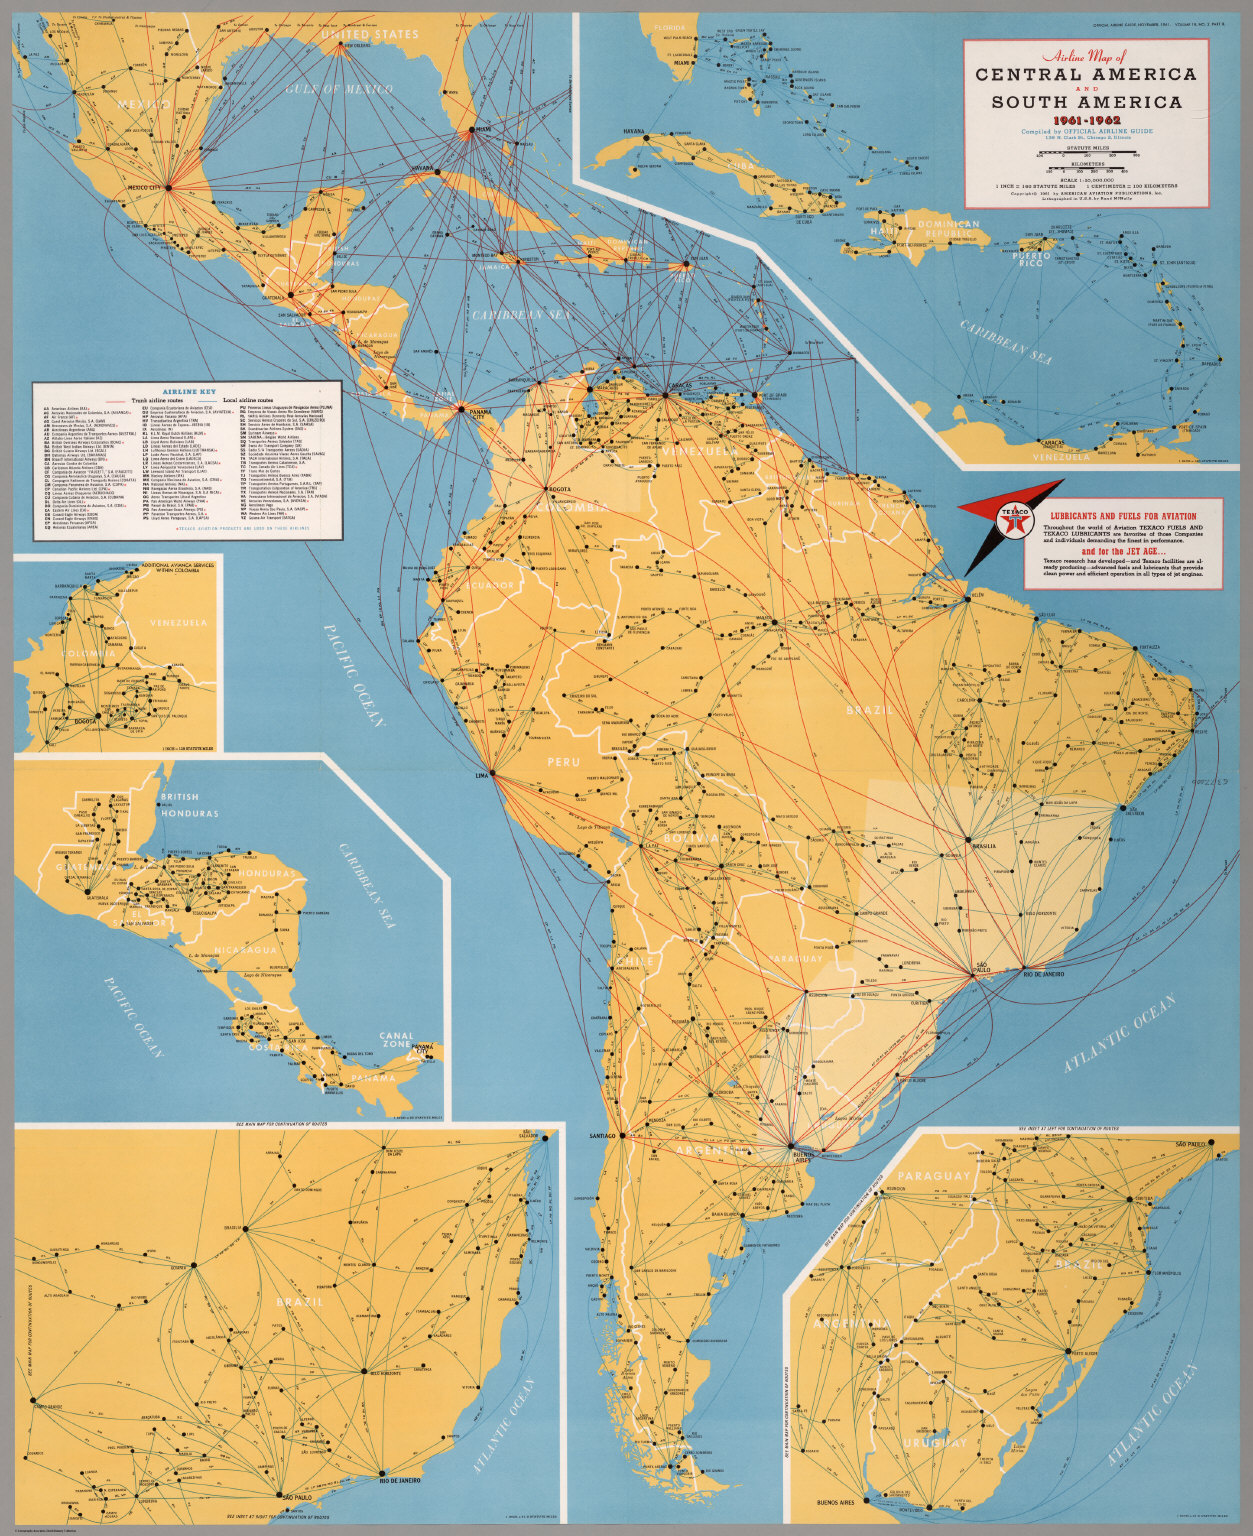 airline map of central america and south america 1961 1962